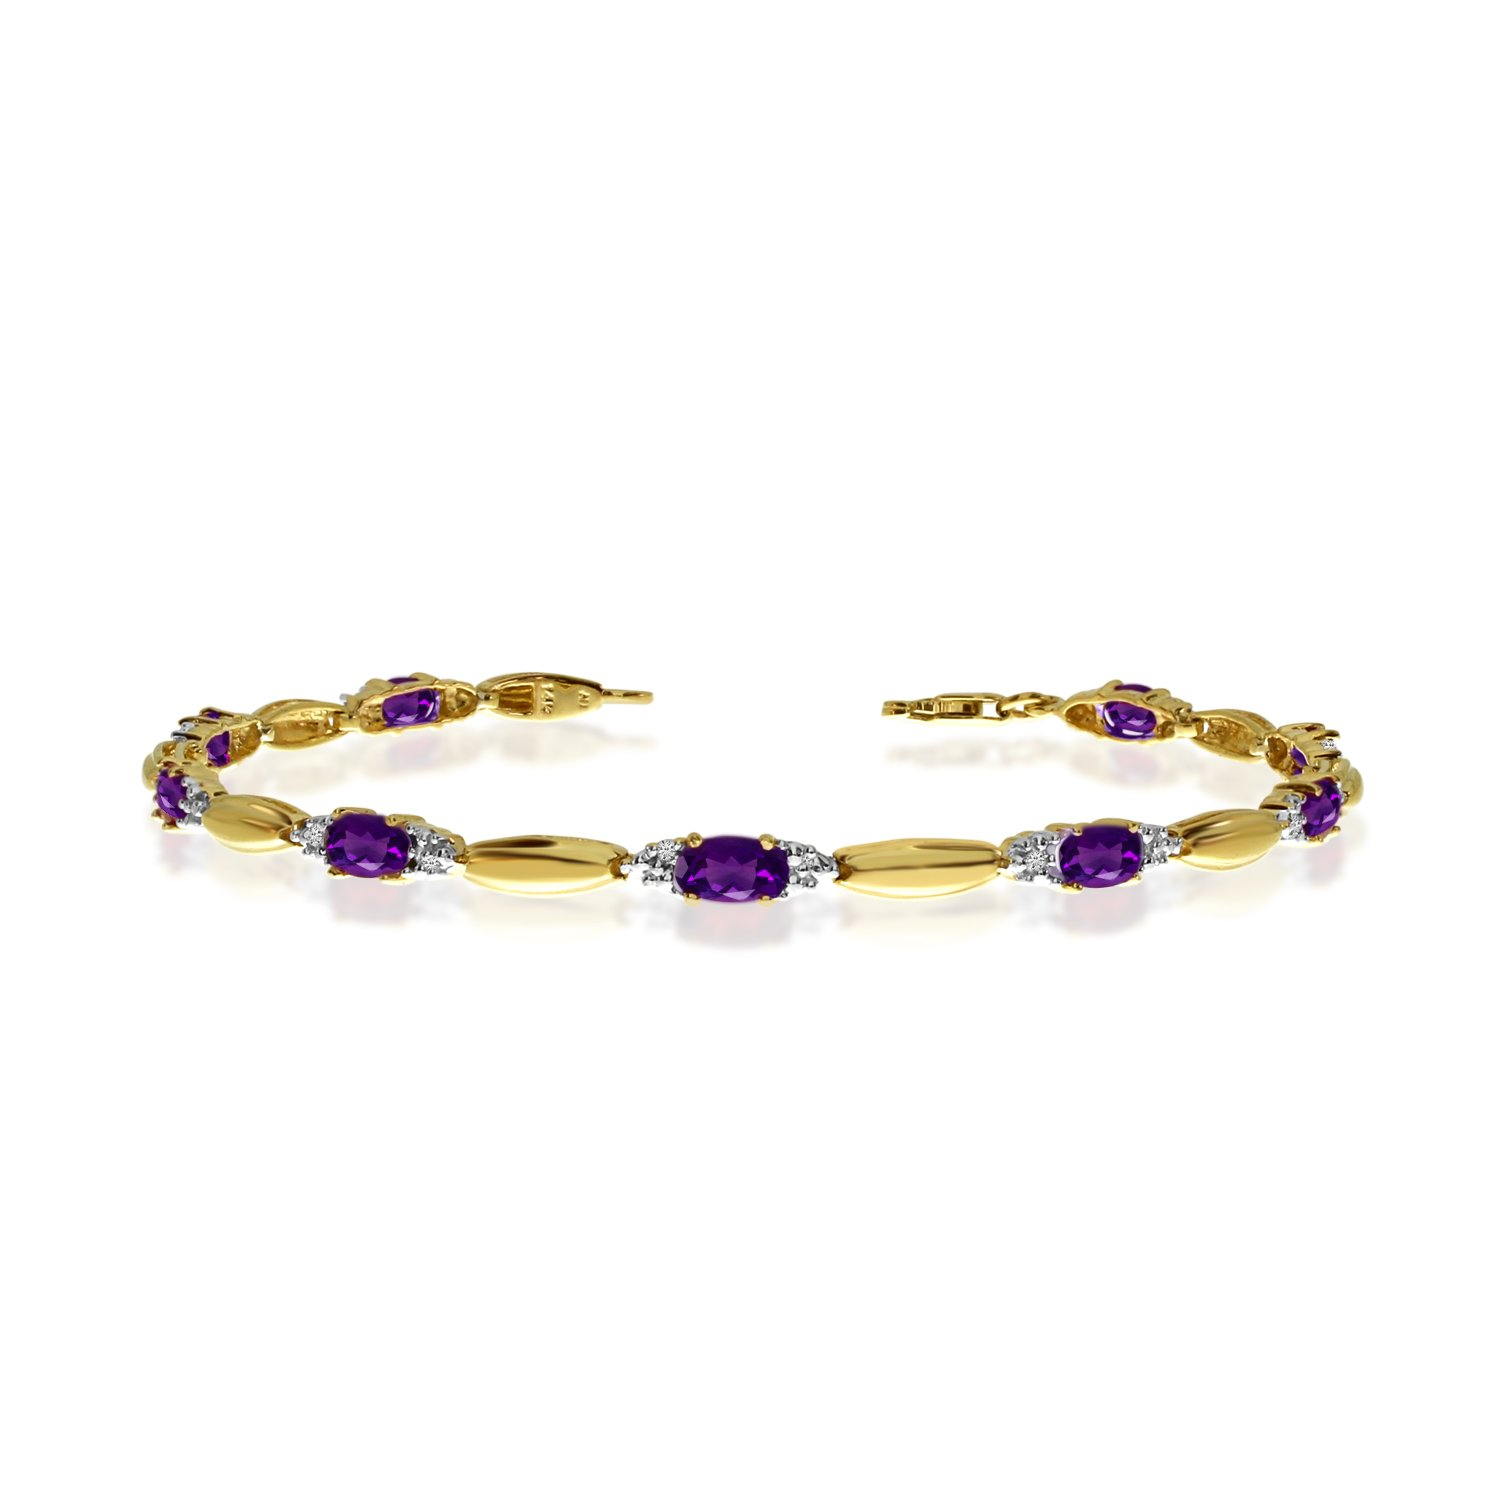 14K Yellow Gold Oval Amethyst and Diamond Bracelet (7 Inch Length)